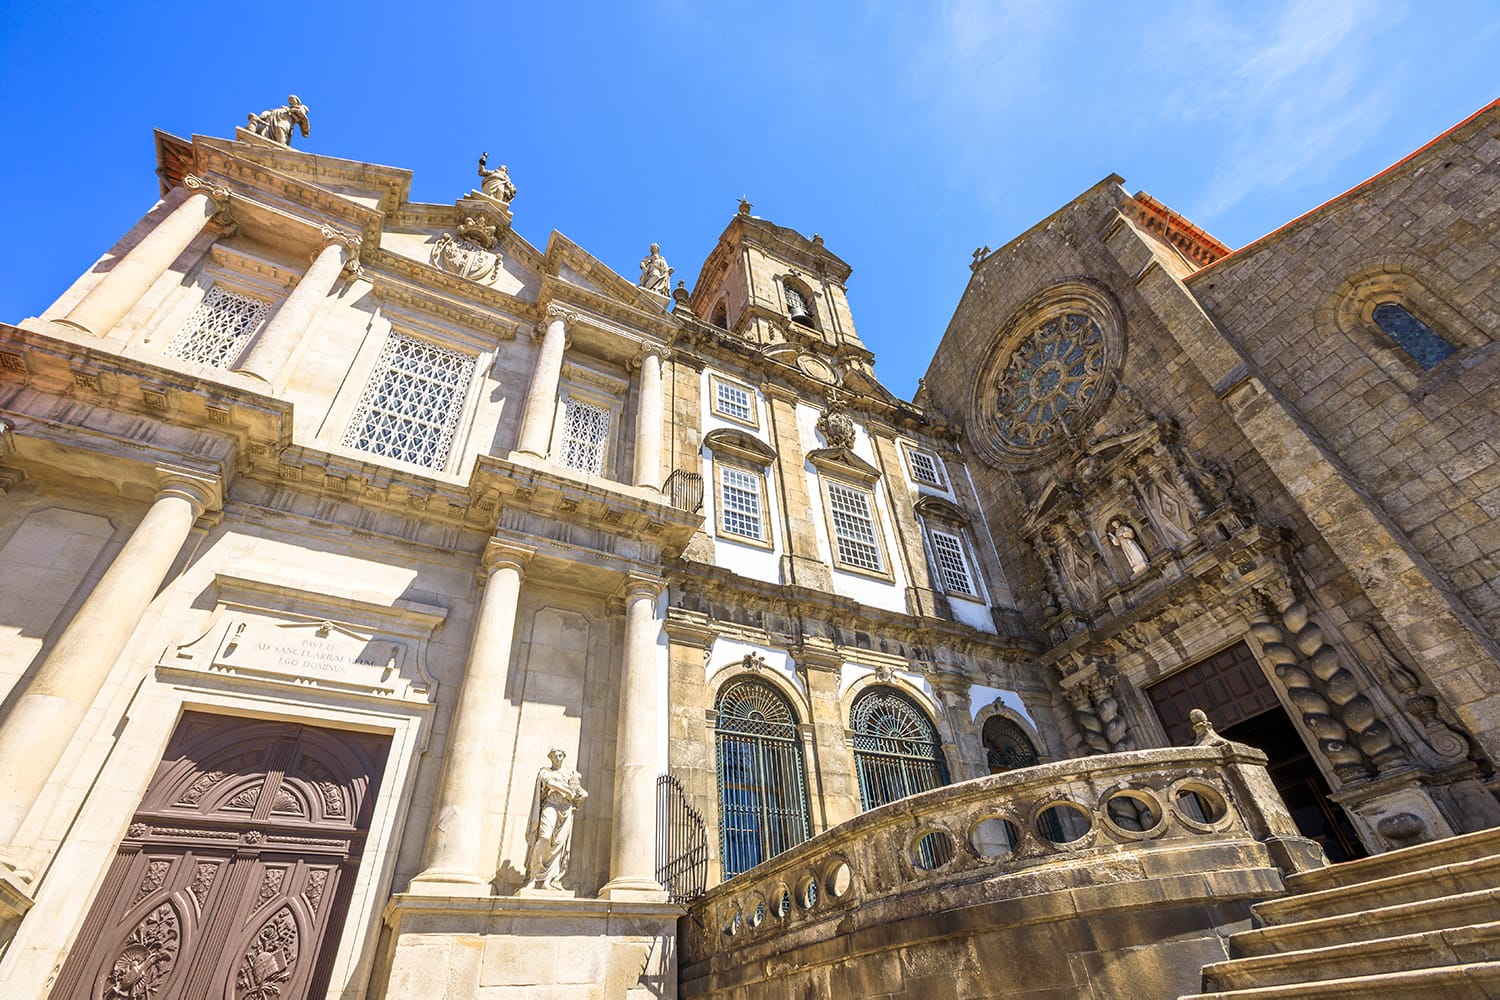 Prospective view of baroque main portal and gothic rose window of main facade of Church of Third Order of St. Francis or Igreja da Ordem Terceira de Sao Francisco. Ribeira district in Porto, Portugal